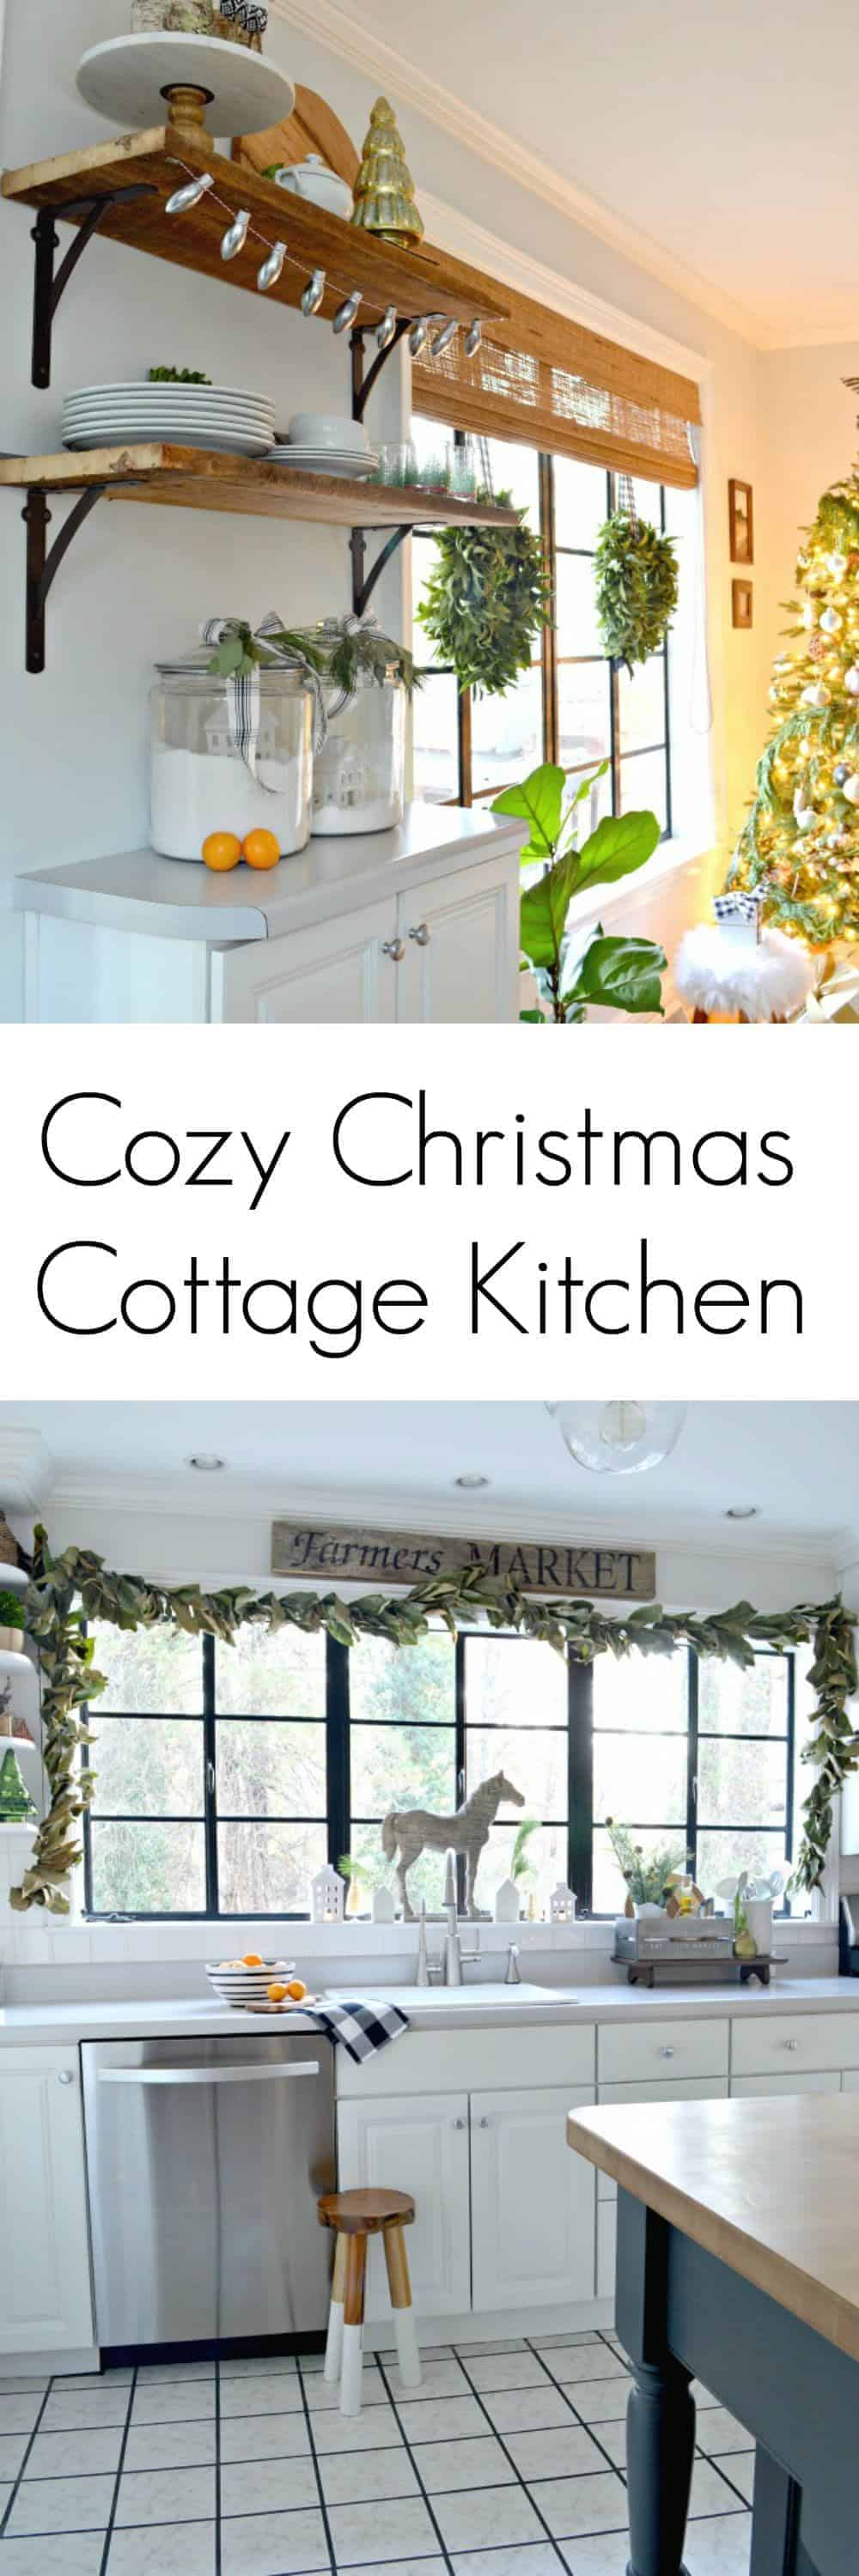 cottage Christmas kitchen window and wood shelves